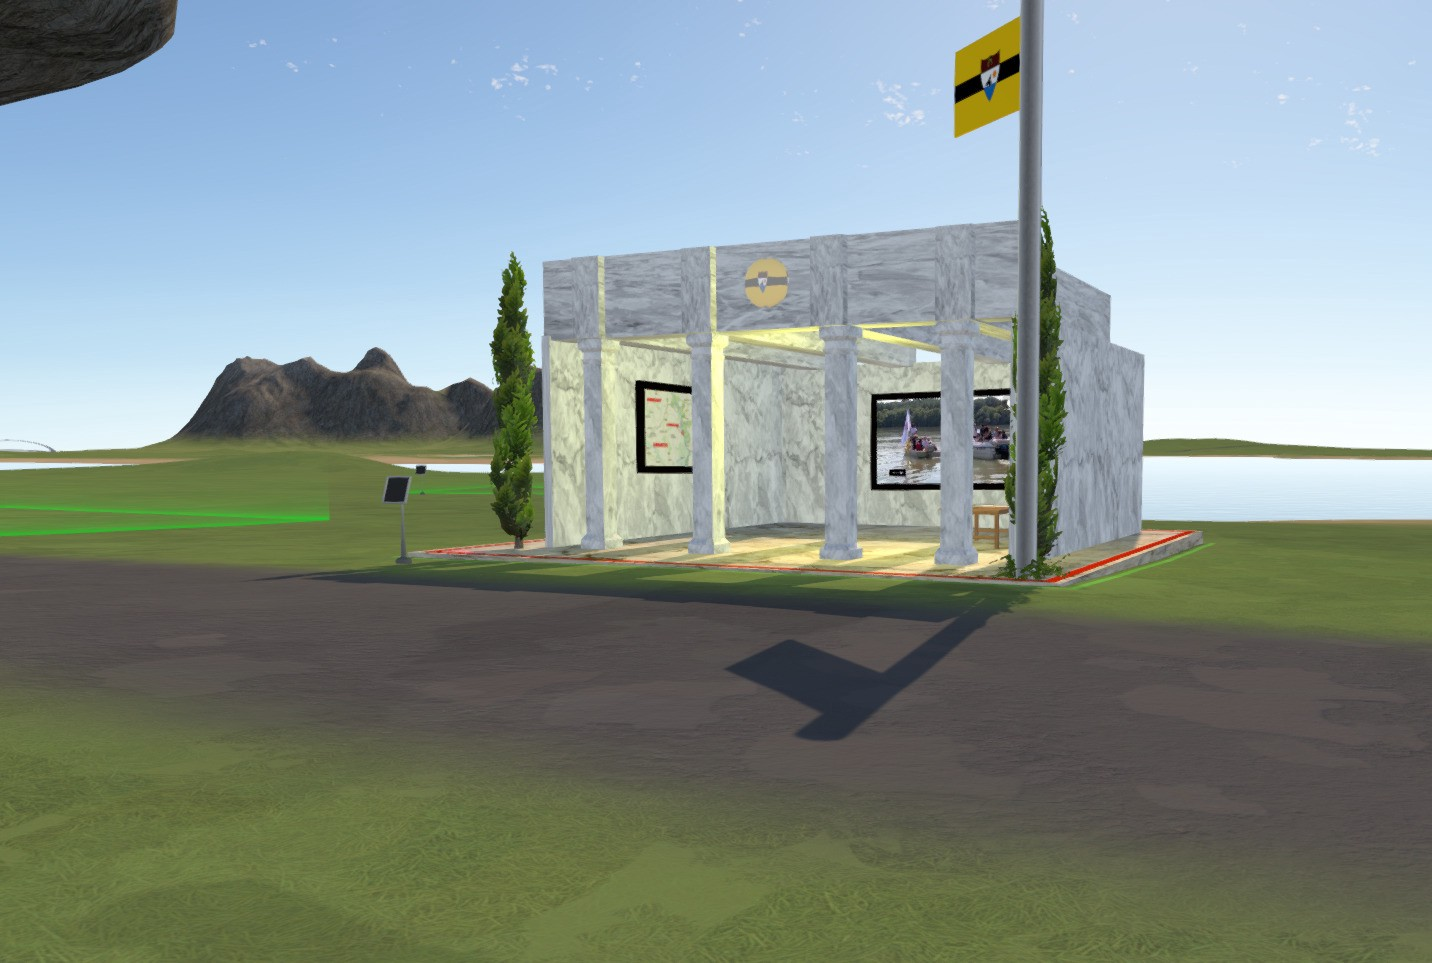 Free Republic of LIBERLAND opens its first virtual embassy inside Somnium Space 2